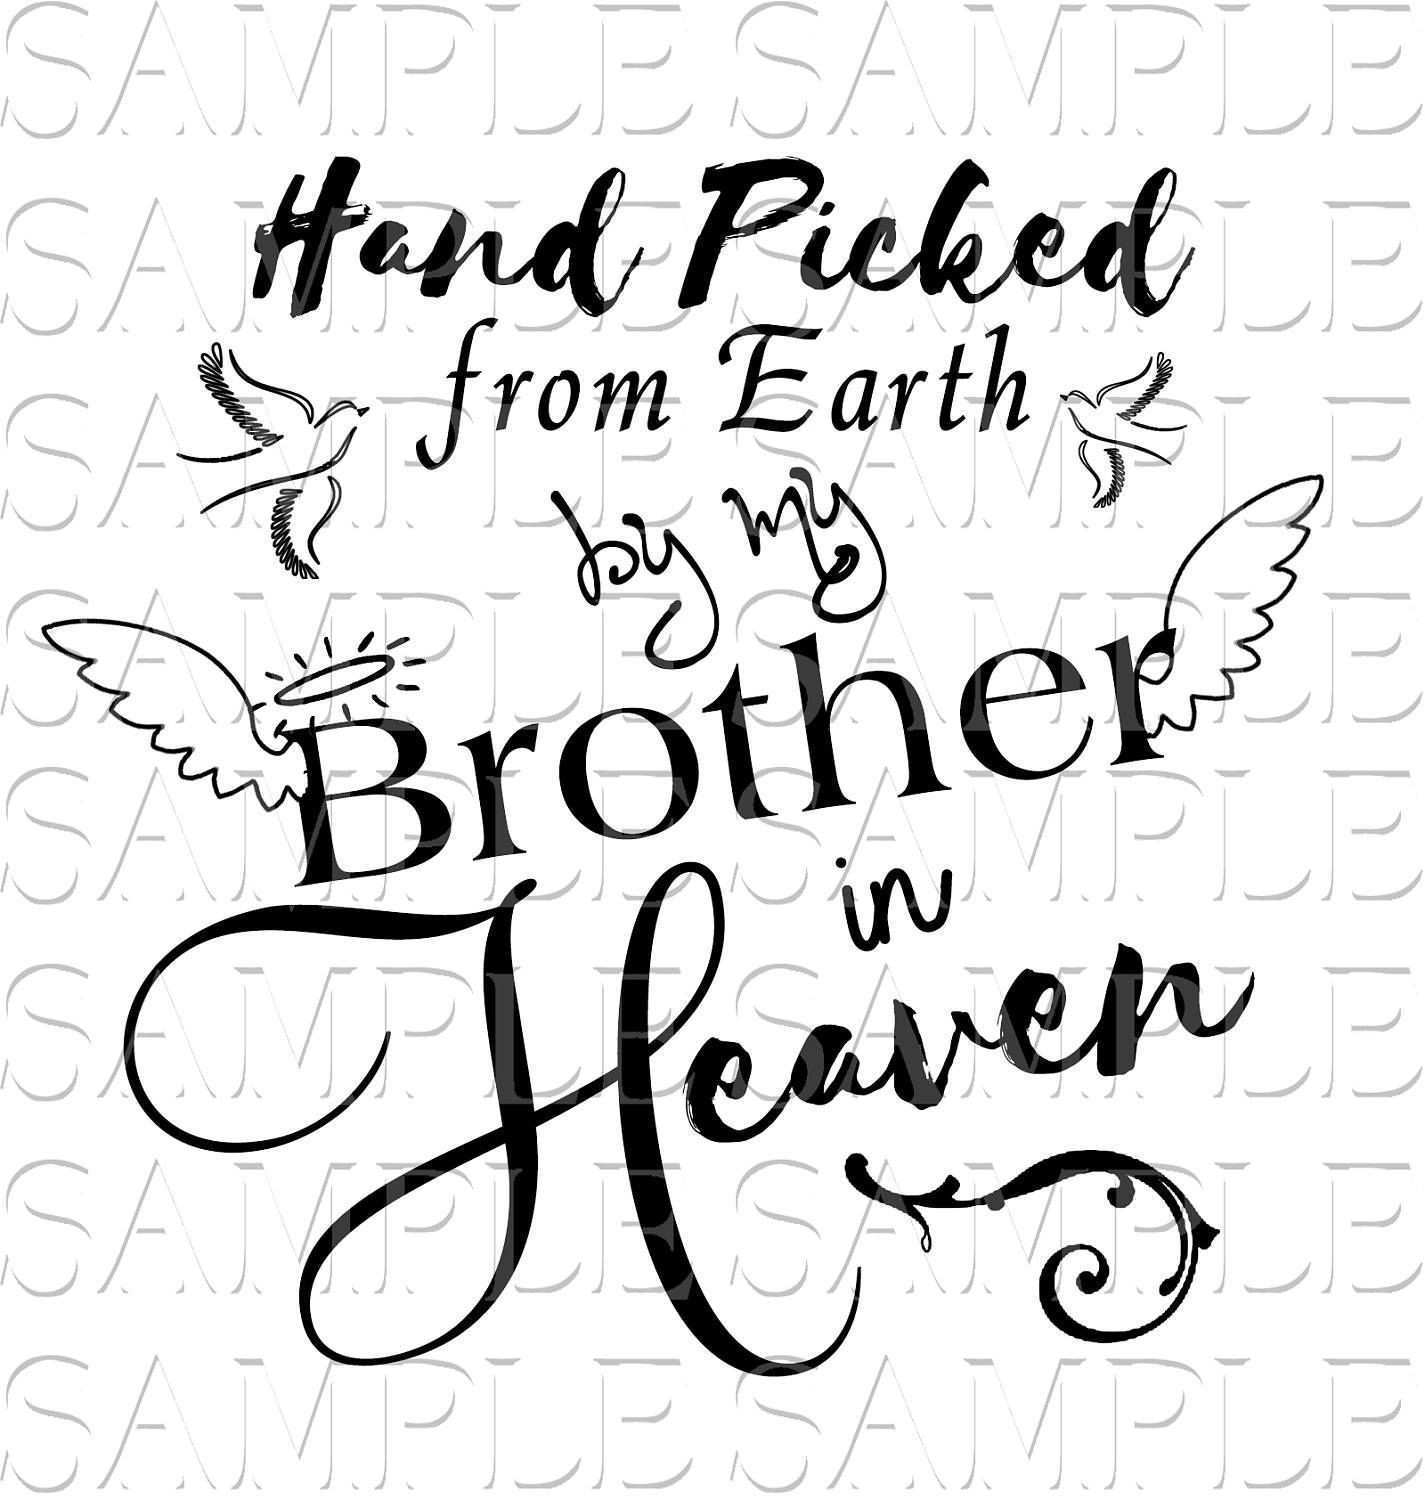 SPECIAL Brother & Sister Angel Loss In Loving Memory SVG Sticker